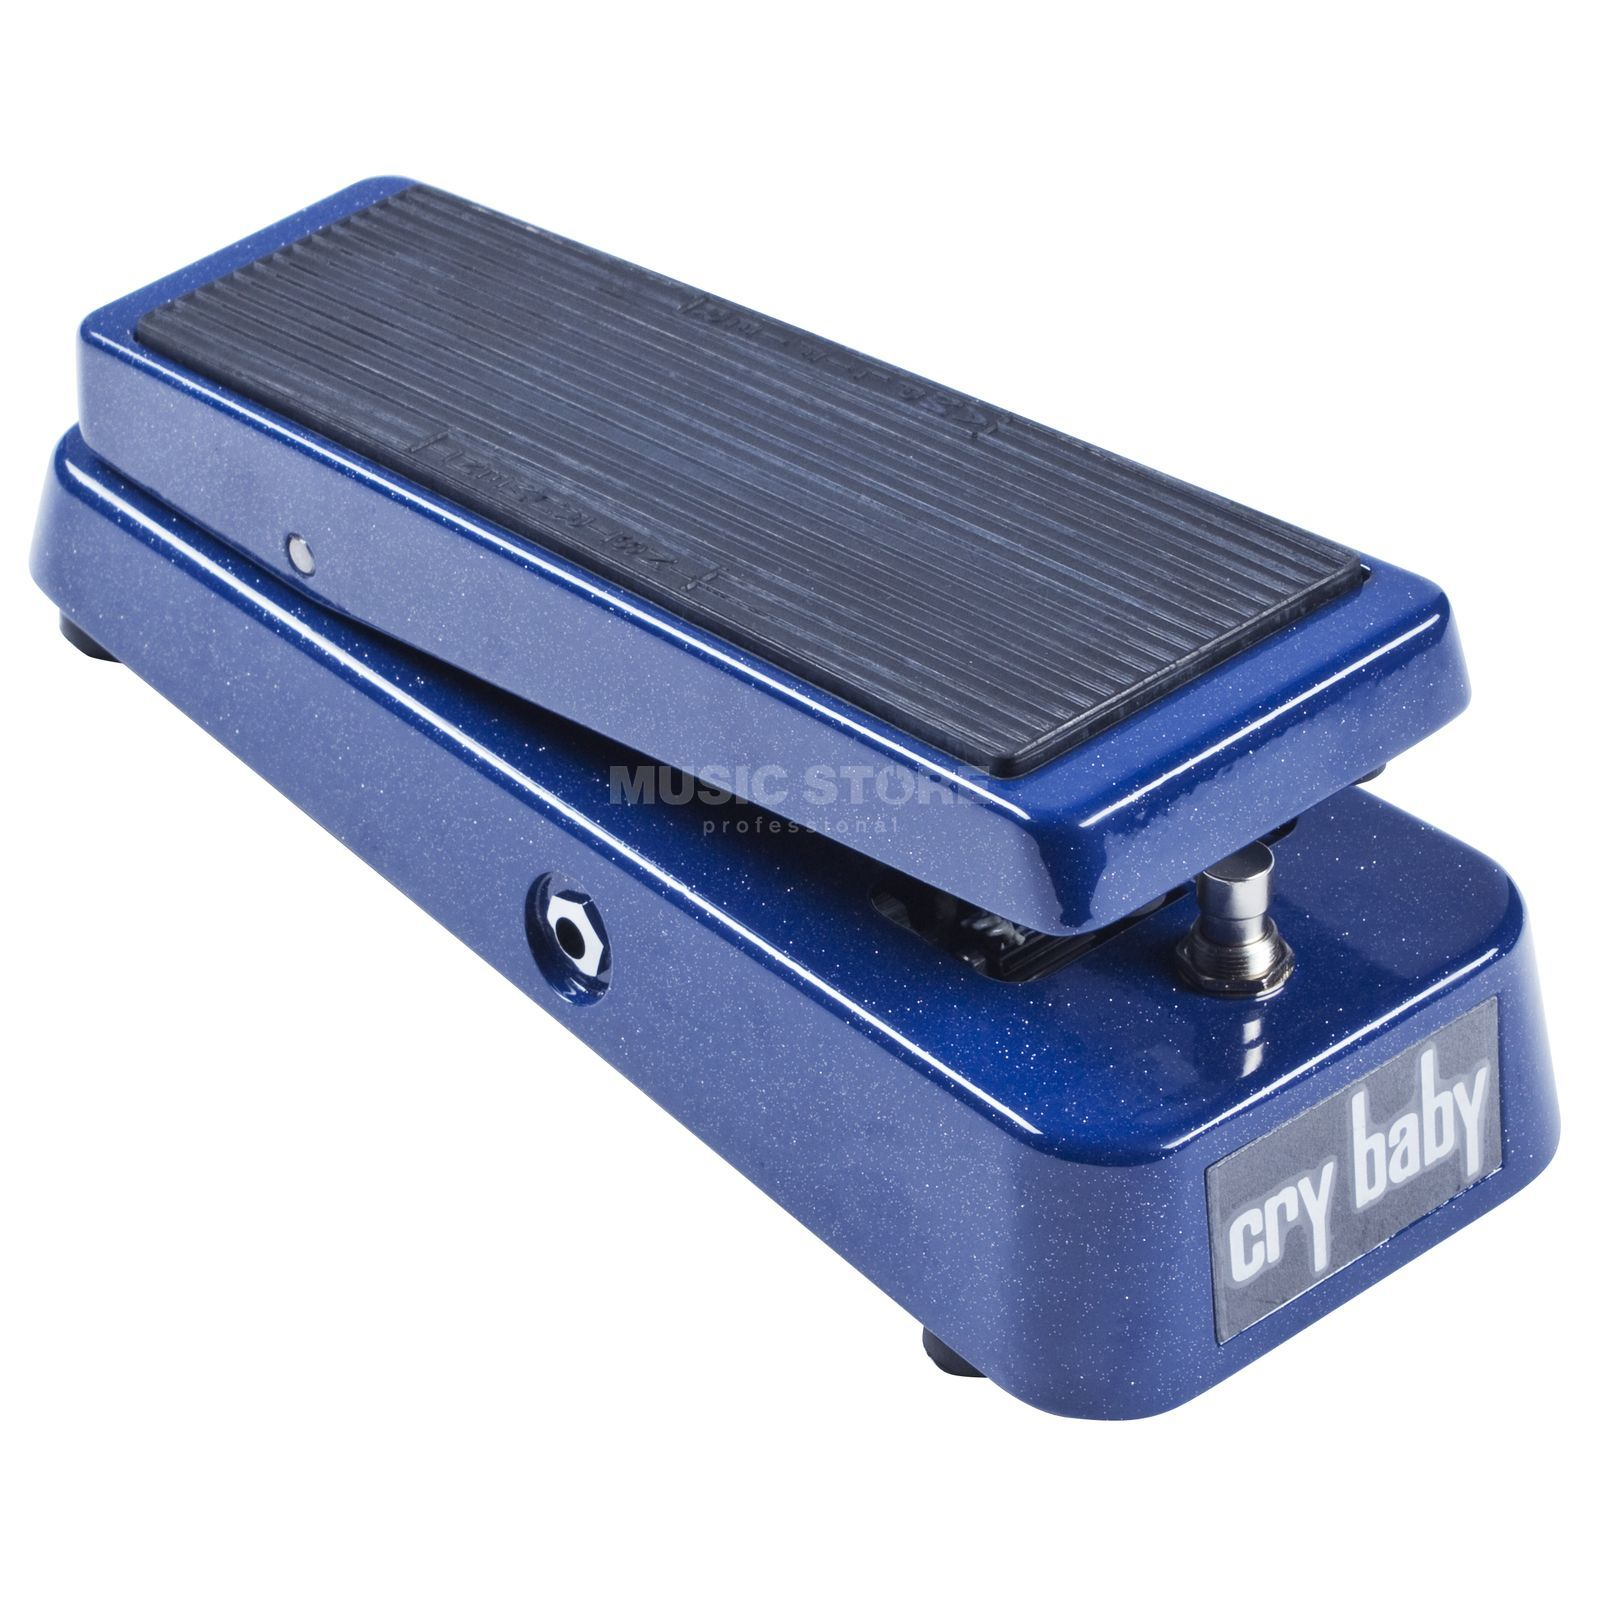 Dunlop Cry Baby GCB95 Wah MB LTD Metallic Blue Limited Edition Produktbillede